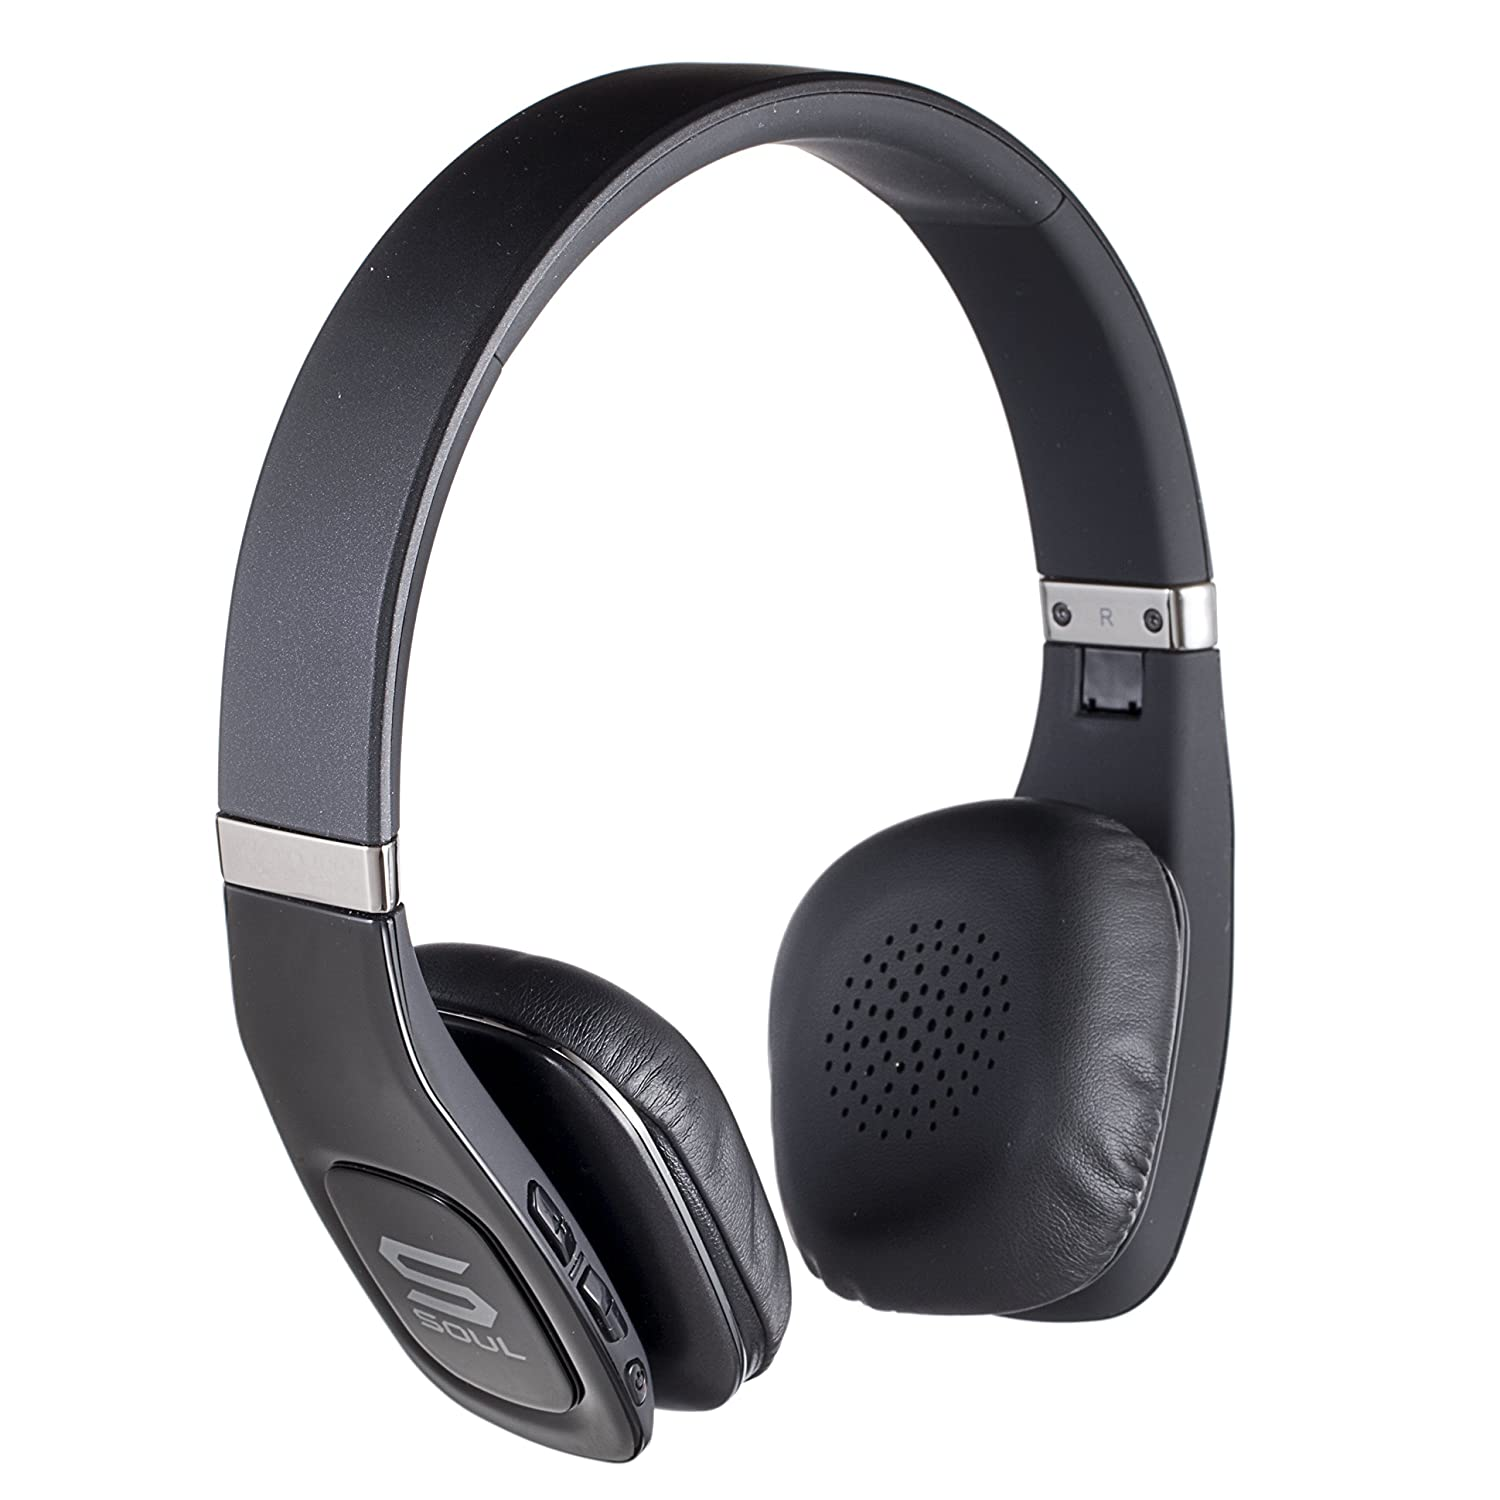 Compare Gaming Headphones, SUPSOO G800 LED USB Surround Stereo PC Over Ear Gaming Headset With Rotating Mic